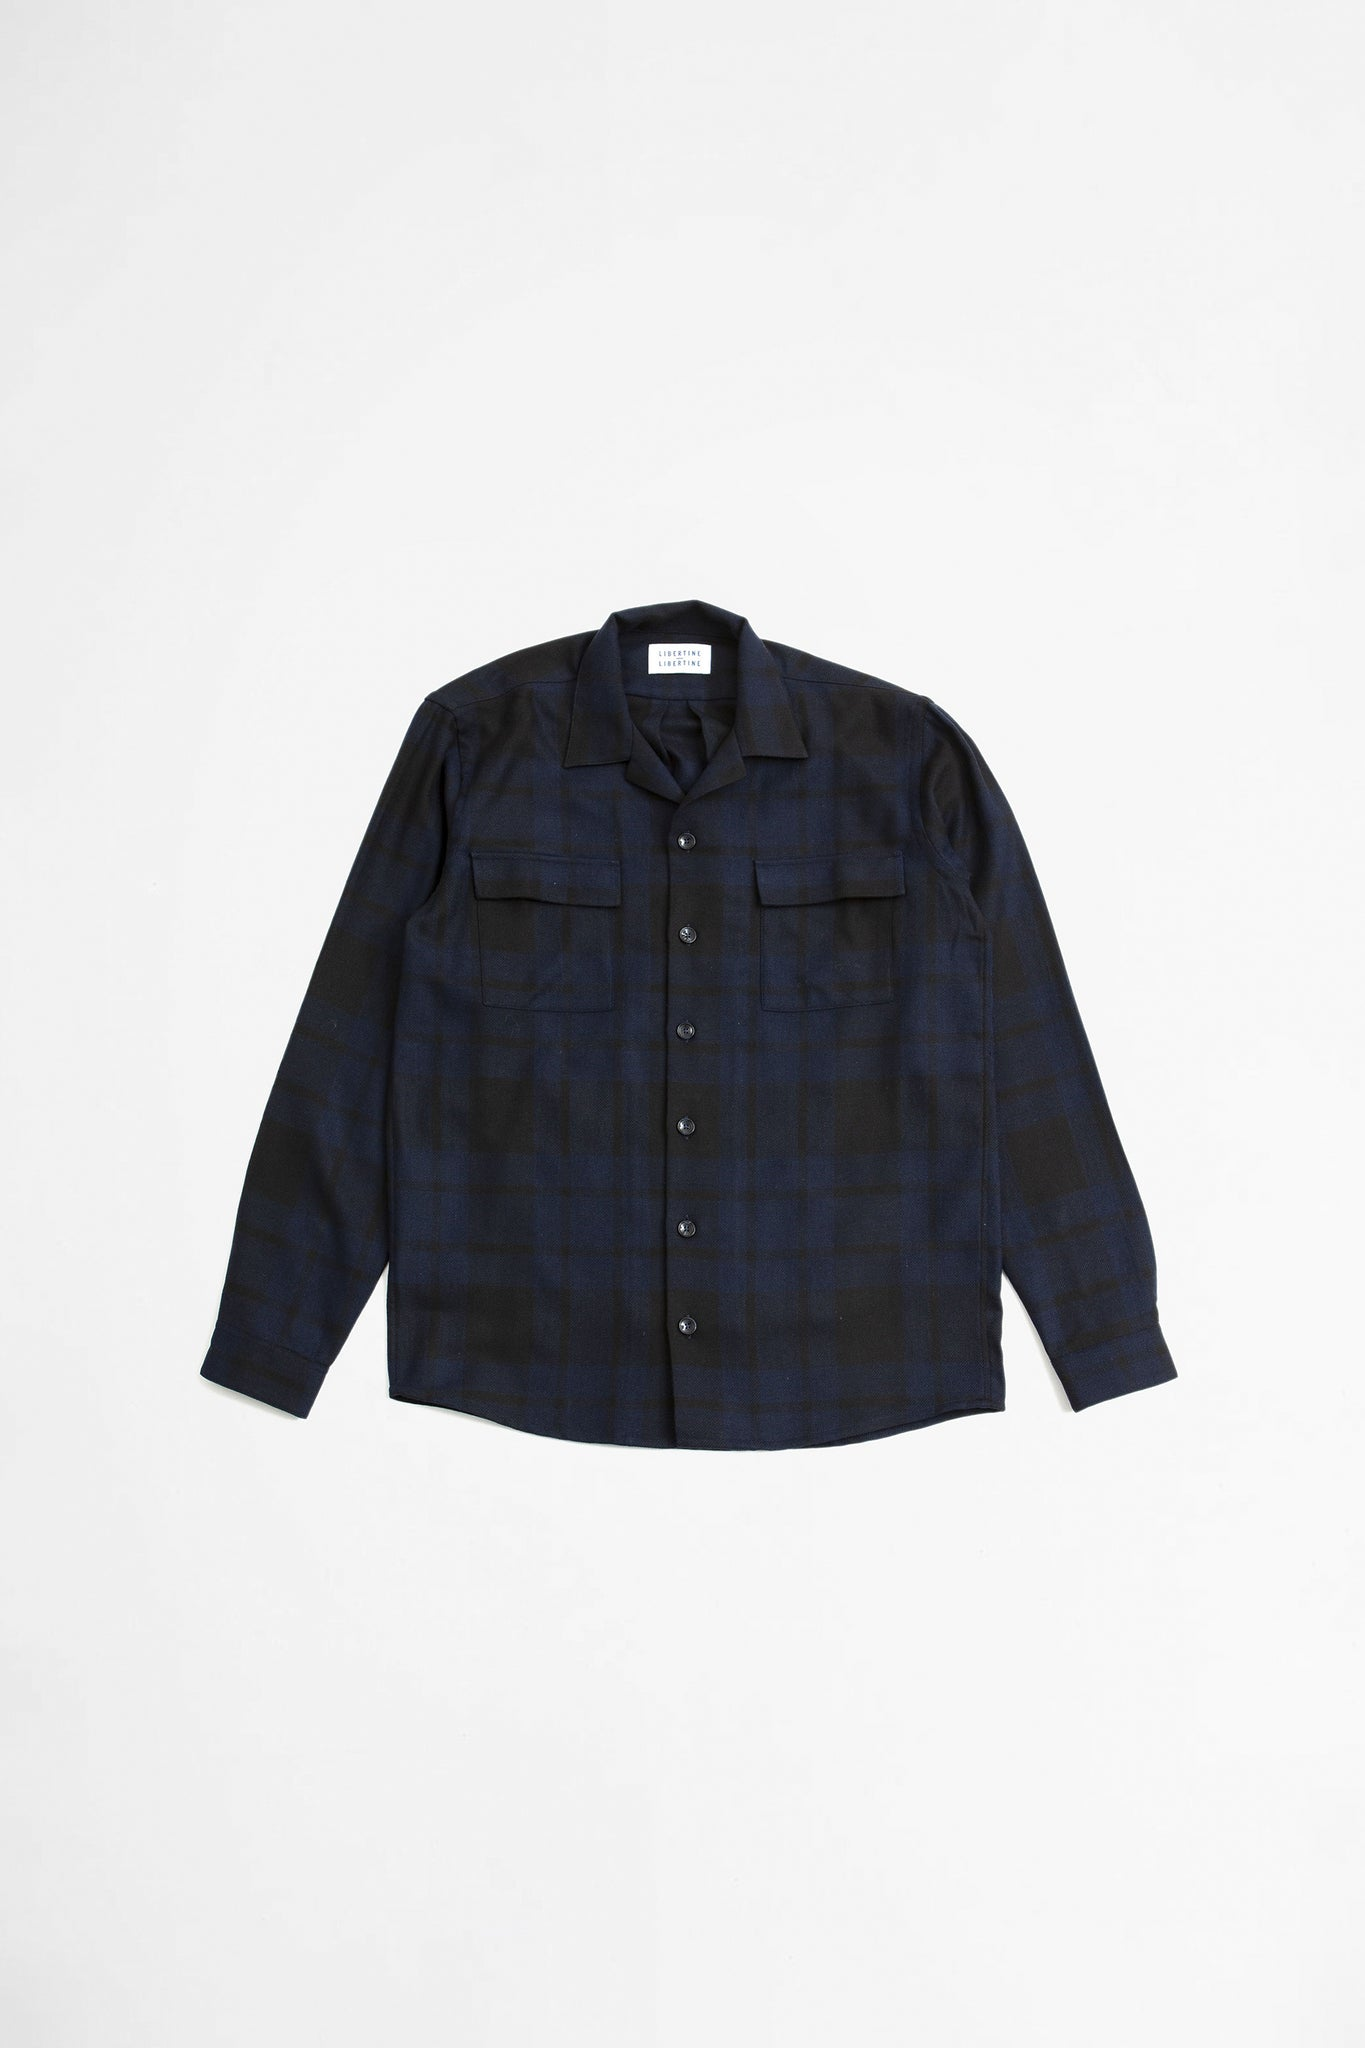 Cave pocket shirt dark navy check